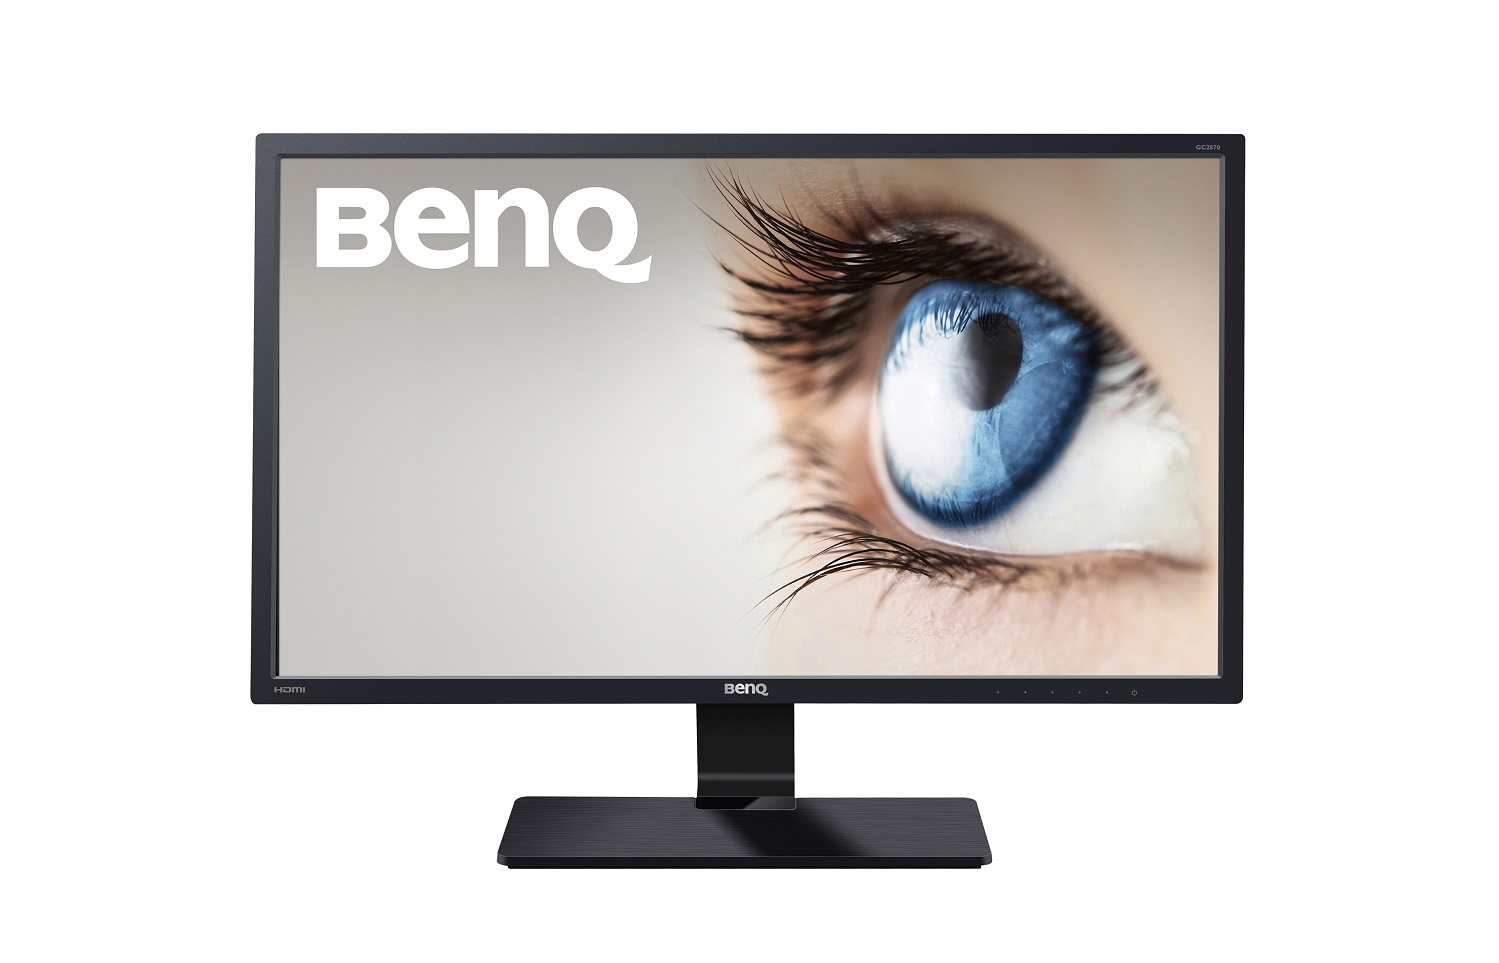 "BenQ LCD GC2870H 28"" W VA LED/20M:1/5ms/300nits/D-SUB/2xHDMI/VESA/Low Blue Light/Flicker-free/ - ROZBALENO"